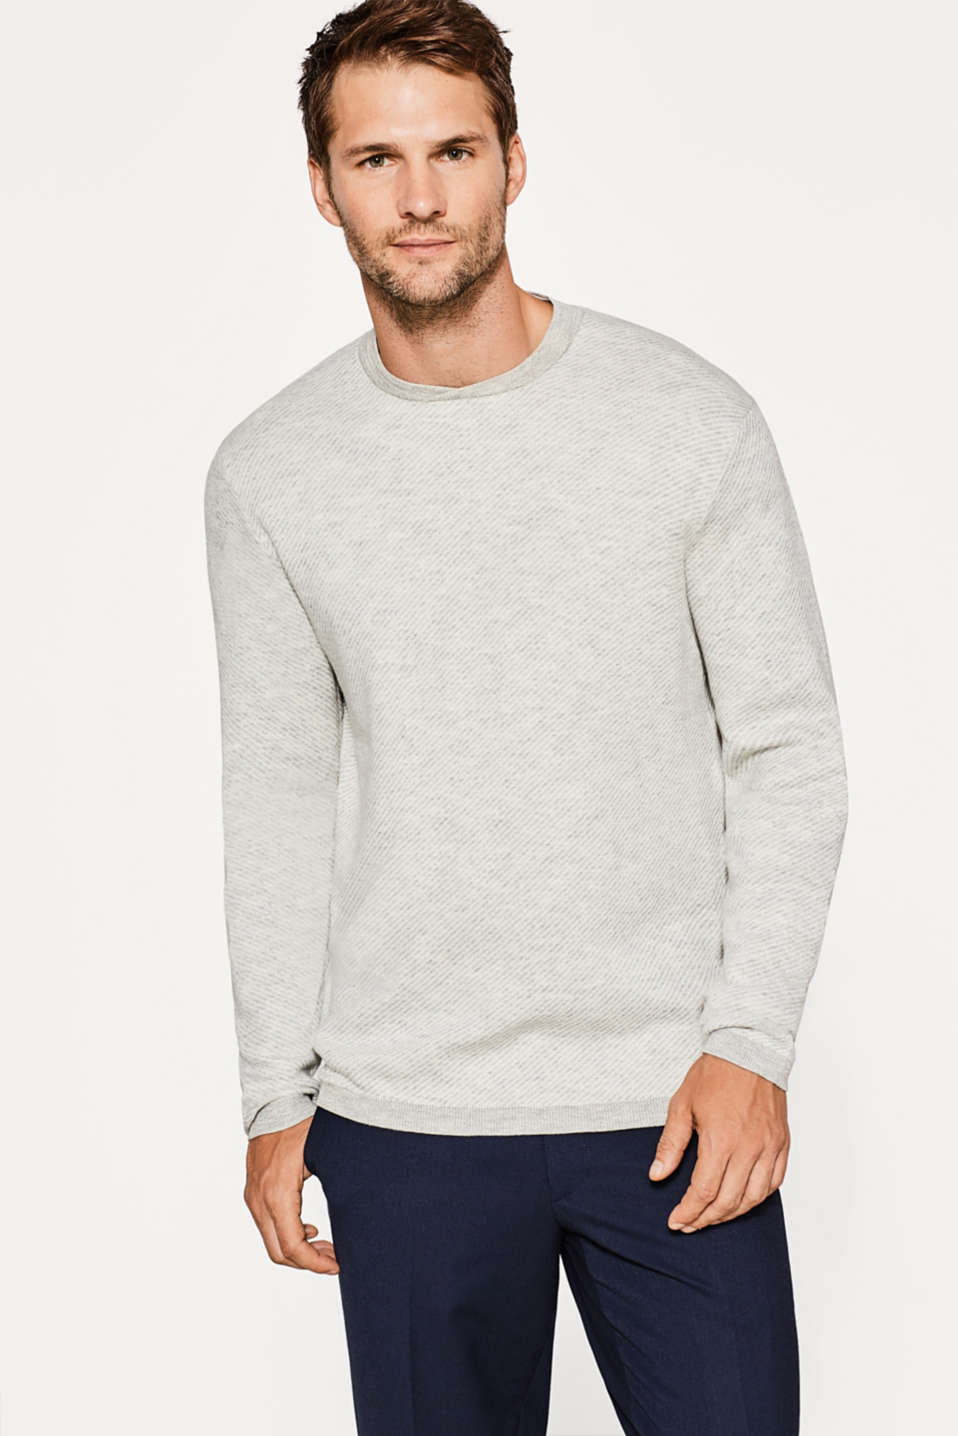 Esprit - Sweat-shirt à rayures 100 % coton